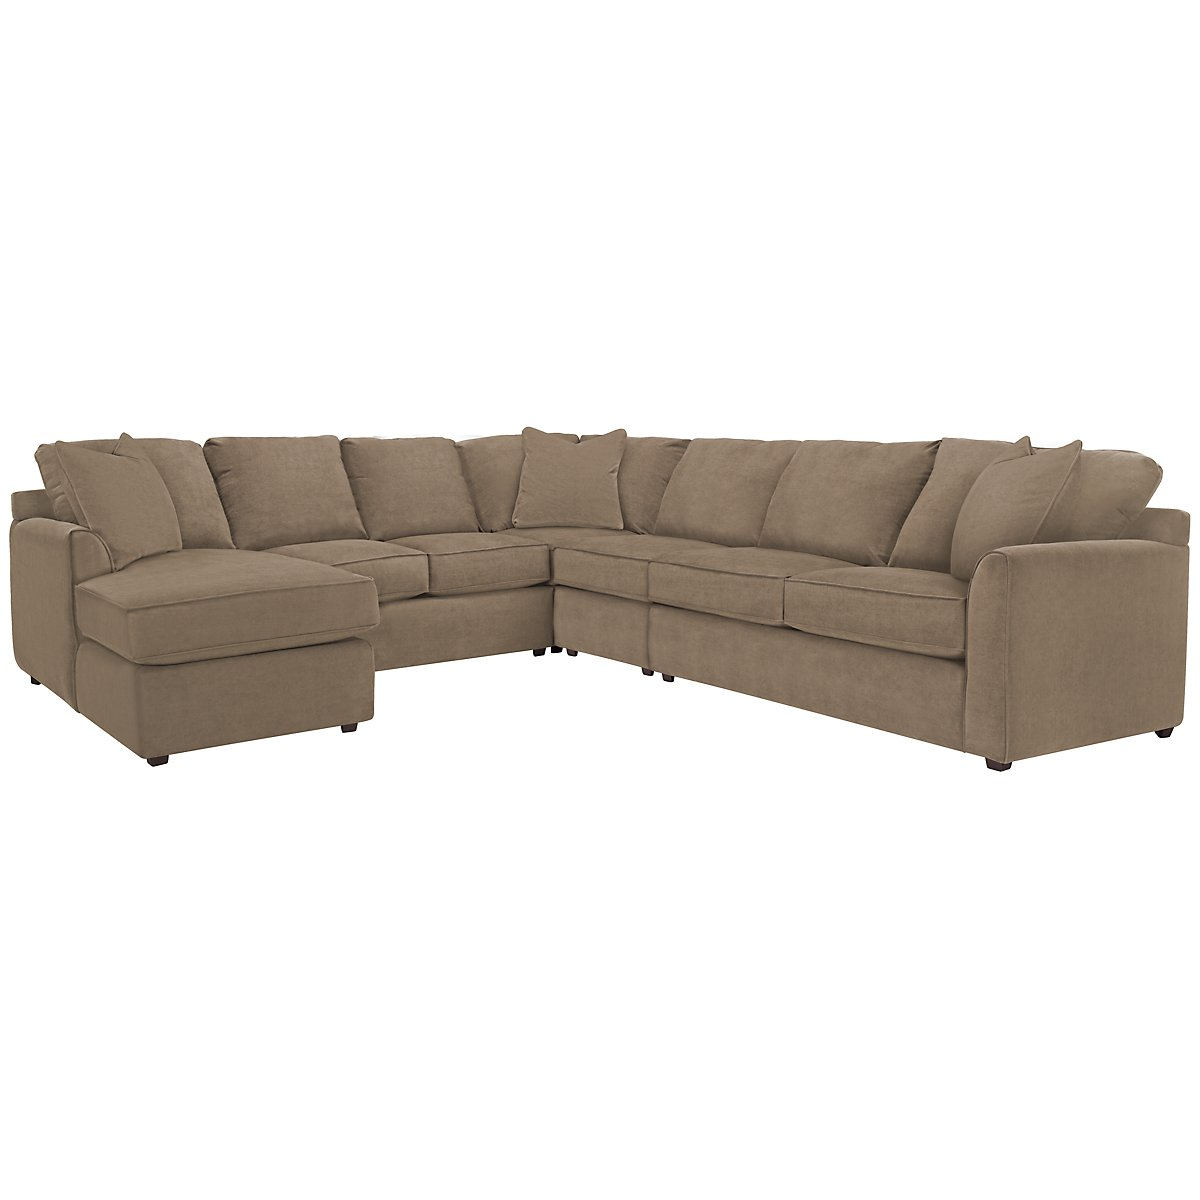 Express3 Light Brown Microfiber Large Left Chaise Sectional